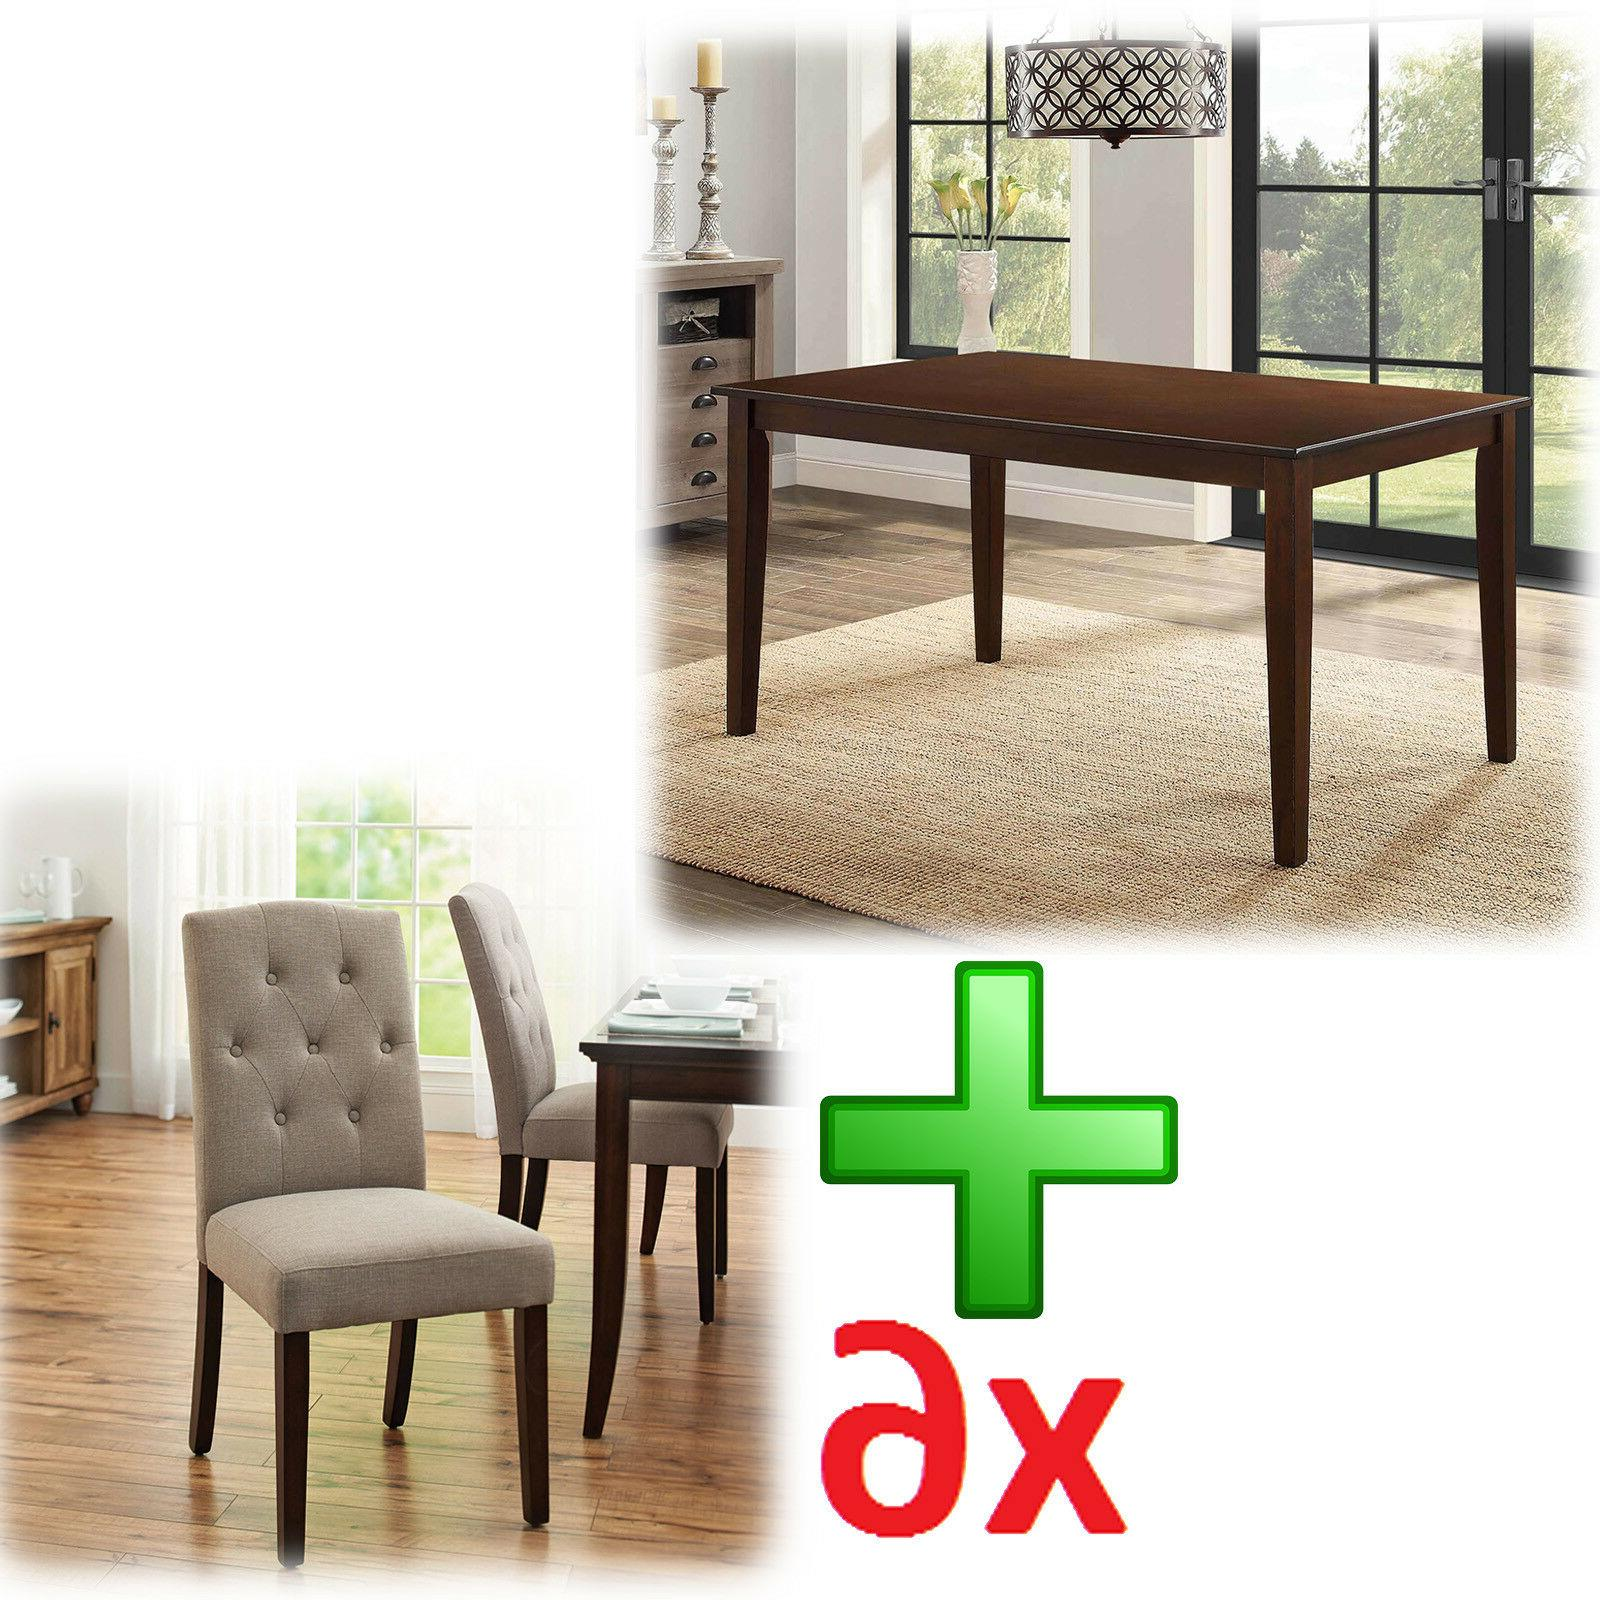 Dining Table Chairs 7 Piece Contemporary Living Kitchen